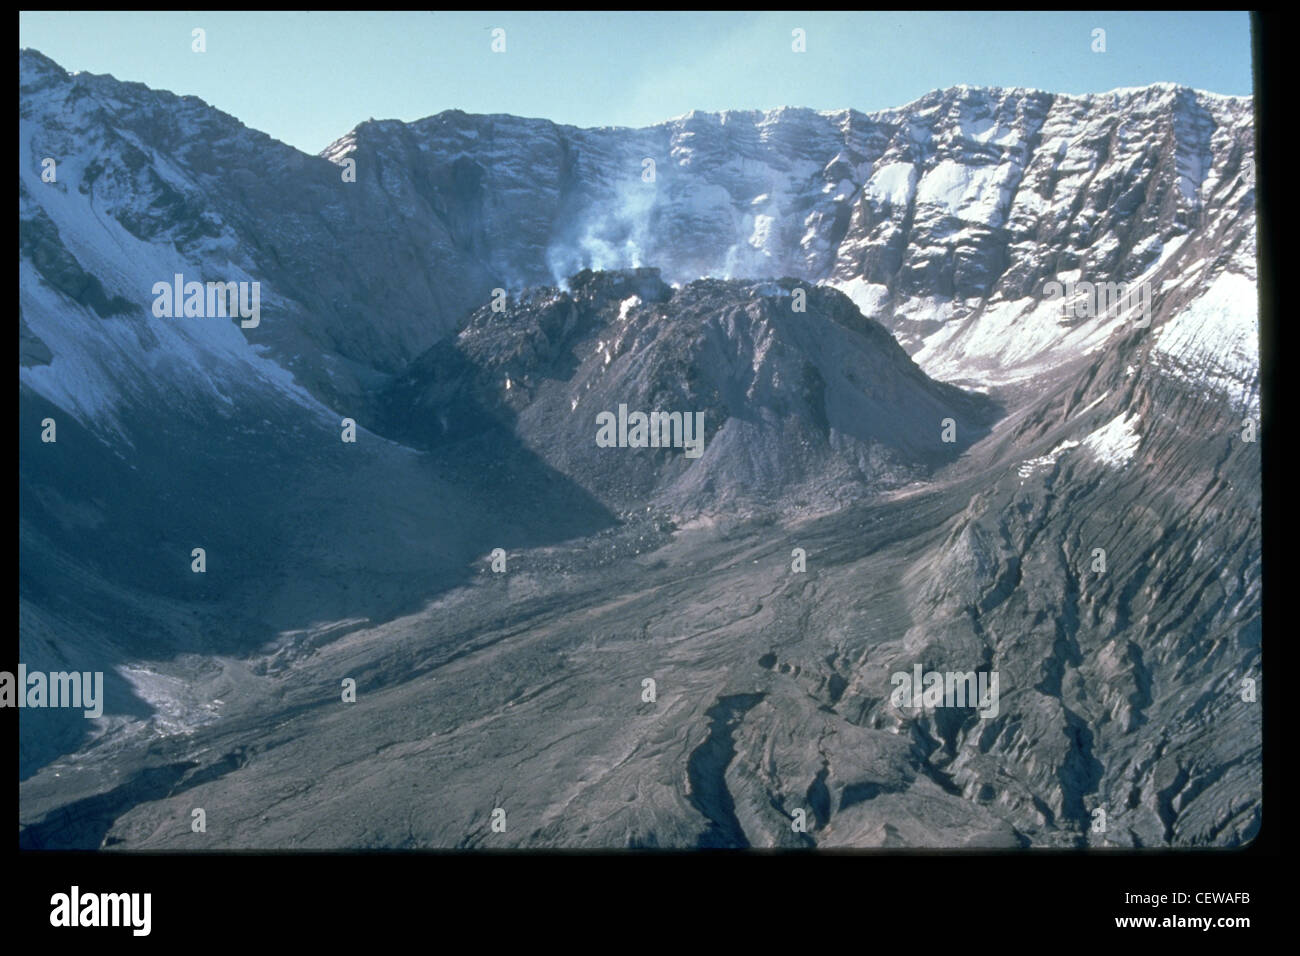 Since December 1980, eruptions of Mount St. Helens have added material to a dacitic lava dome with the crater, as - Stock Image